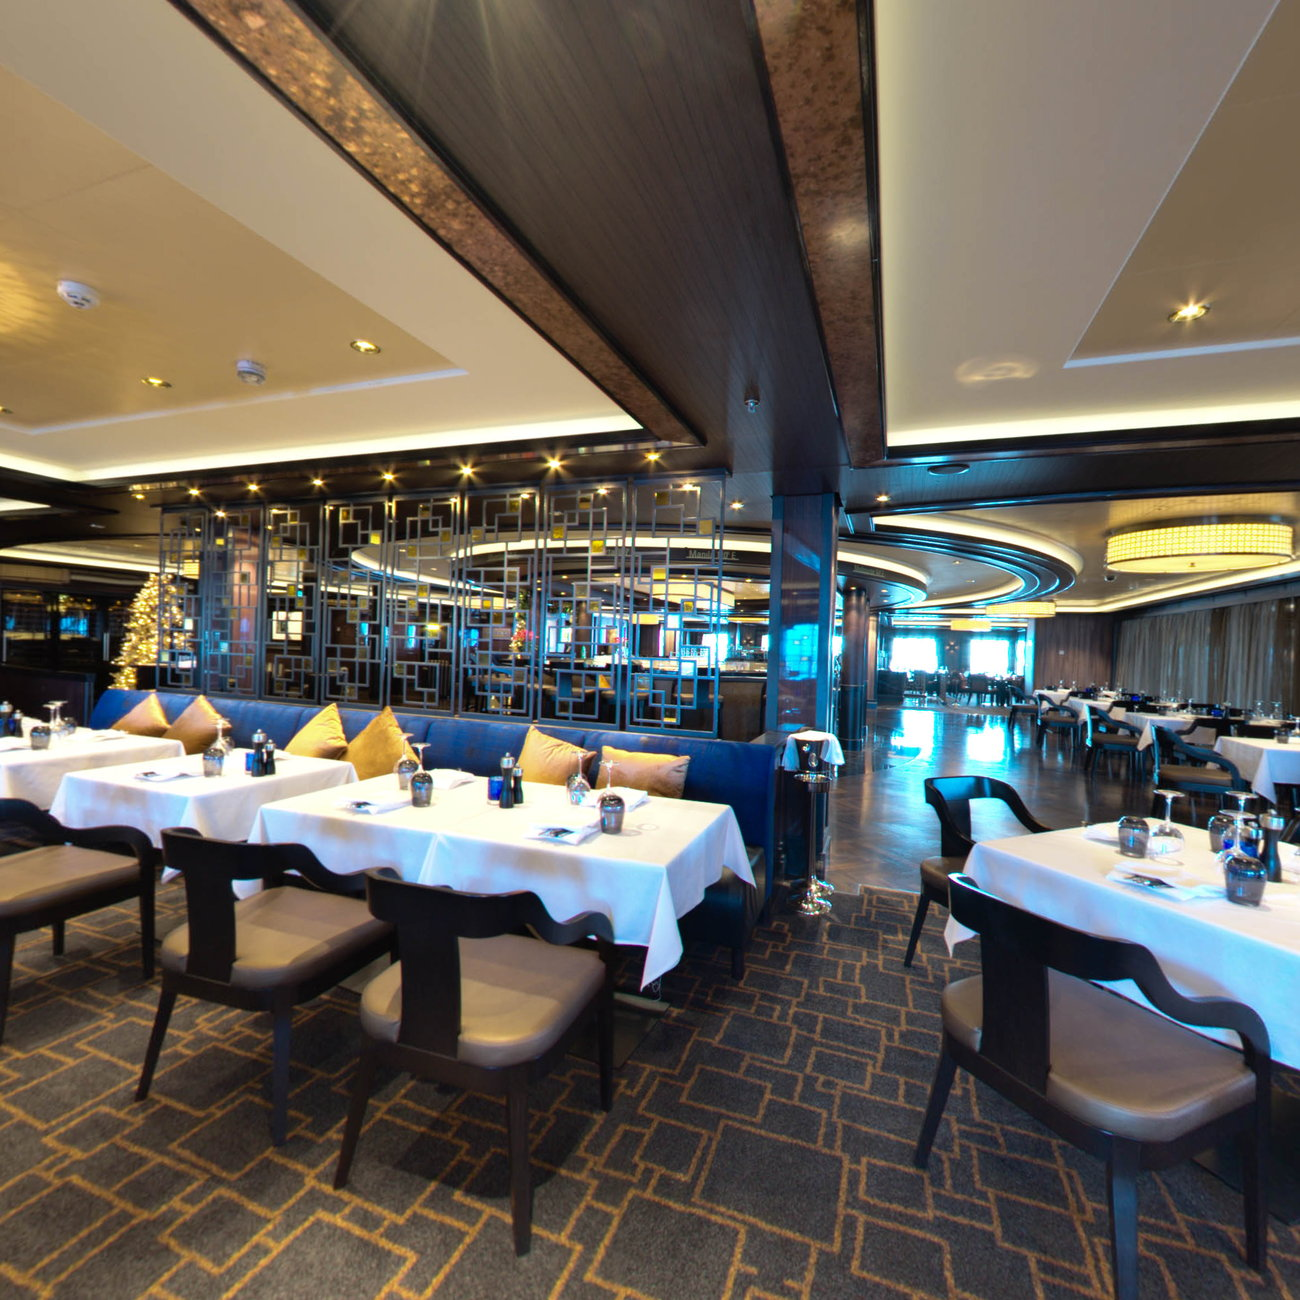 Panorama of Cagney's Steakhouse on Norwegian Escape